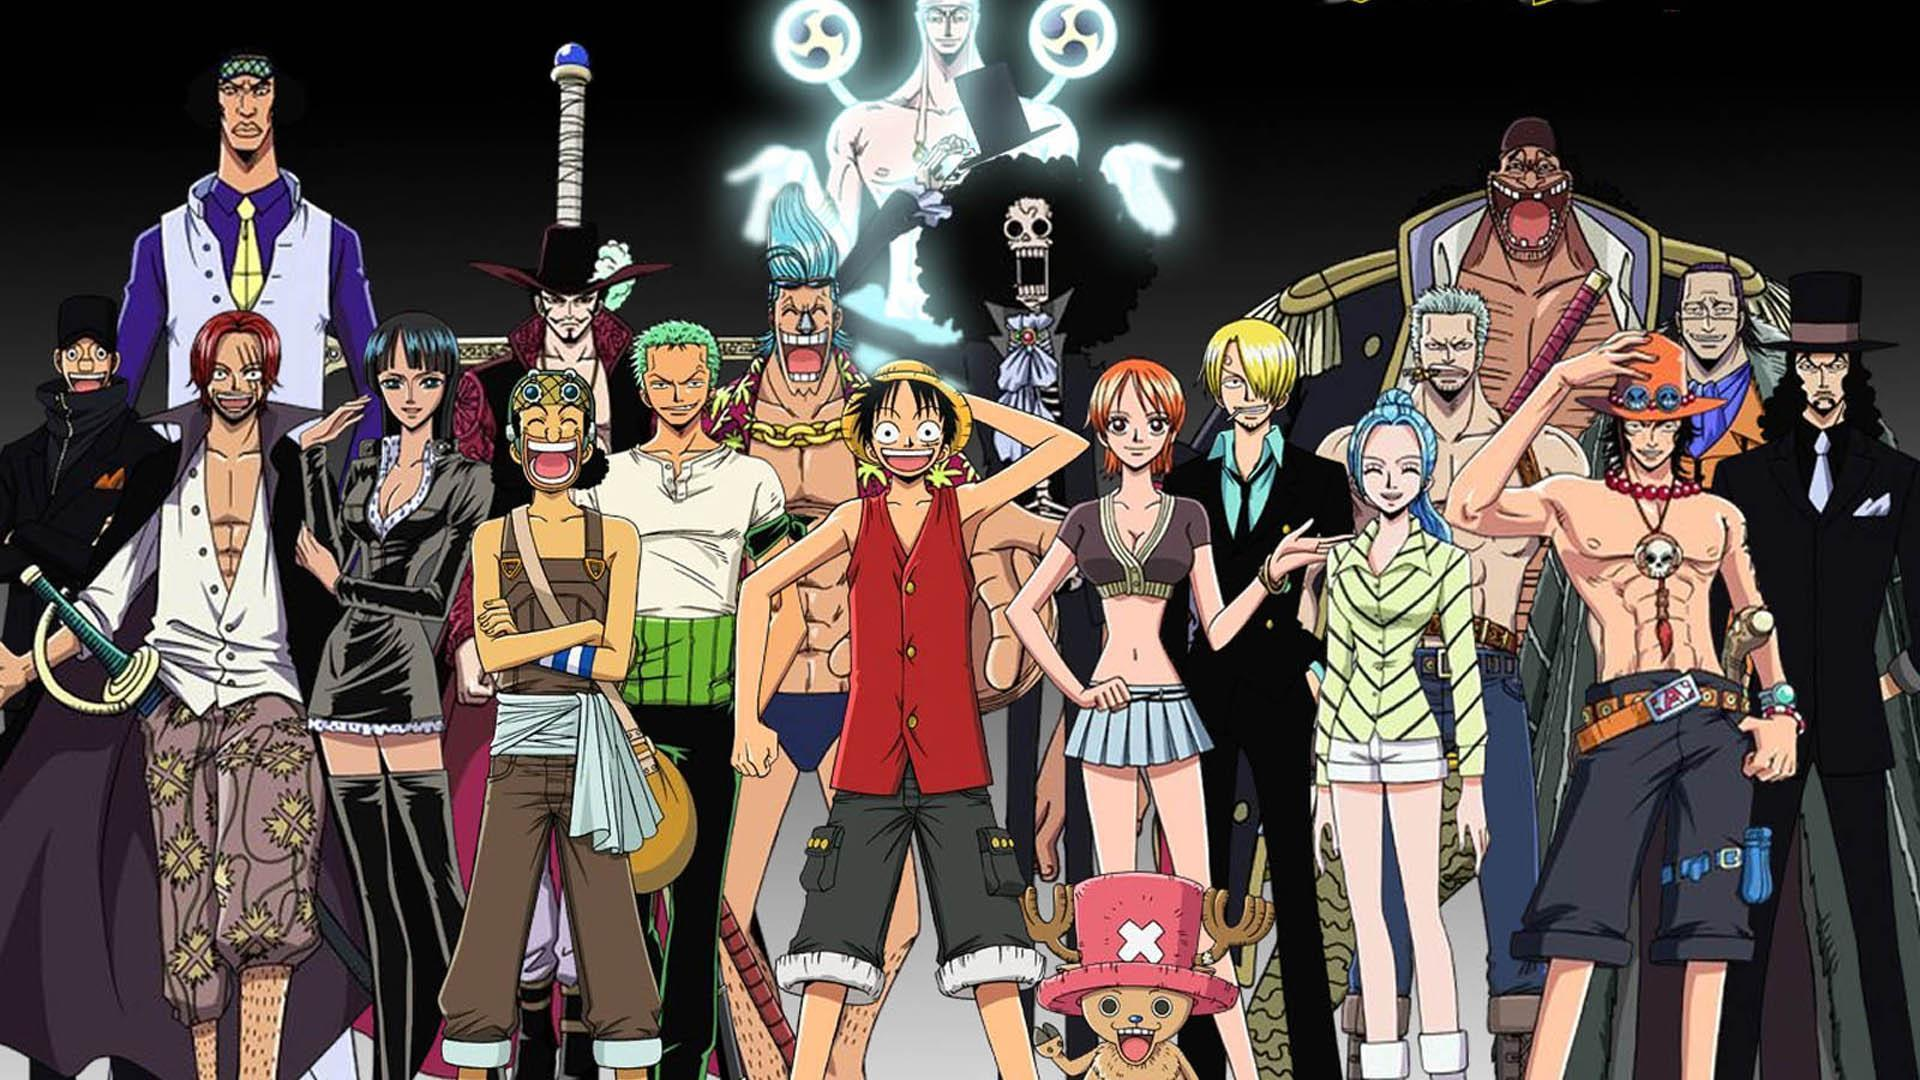 1 Piece Anime Characters : One piece wallpapers  wallpaper cave